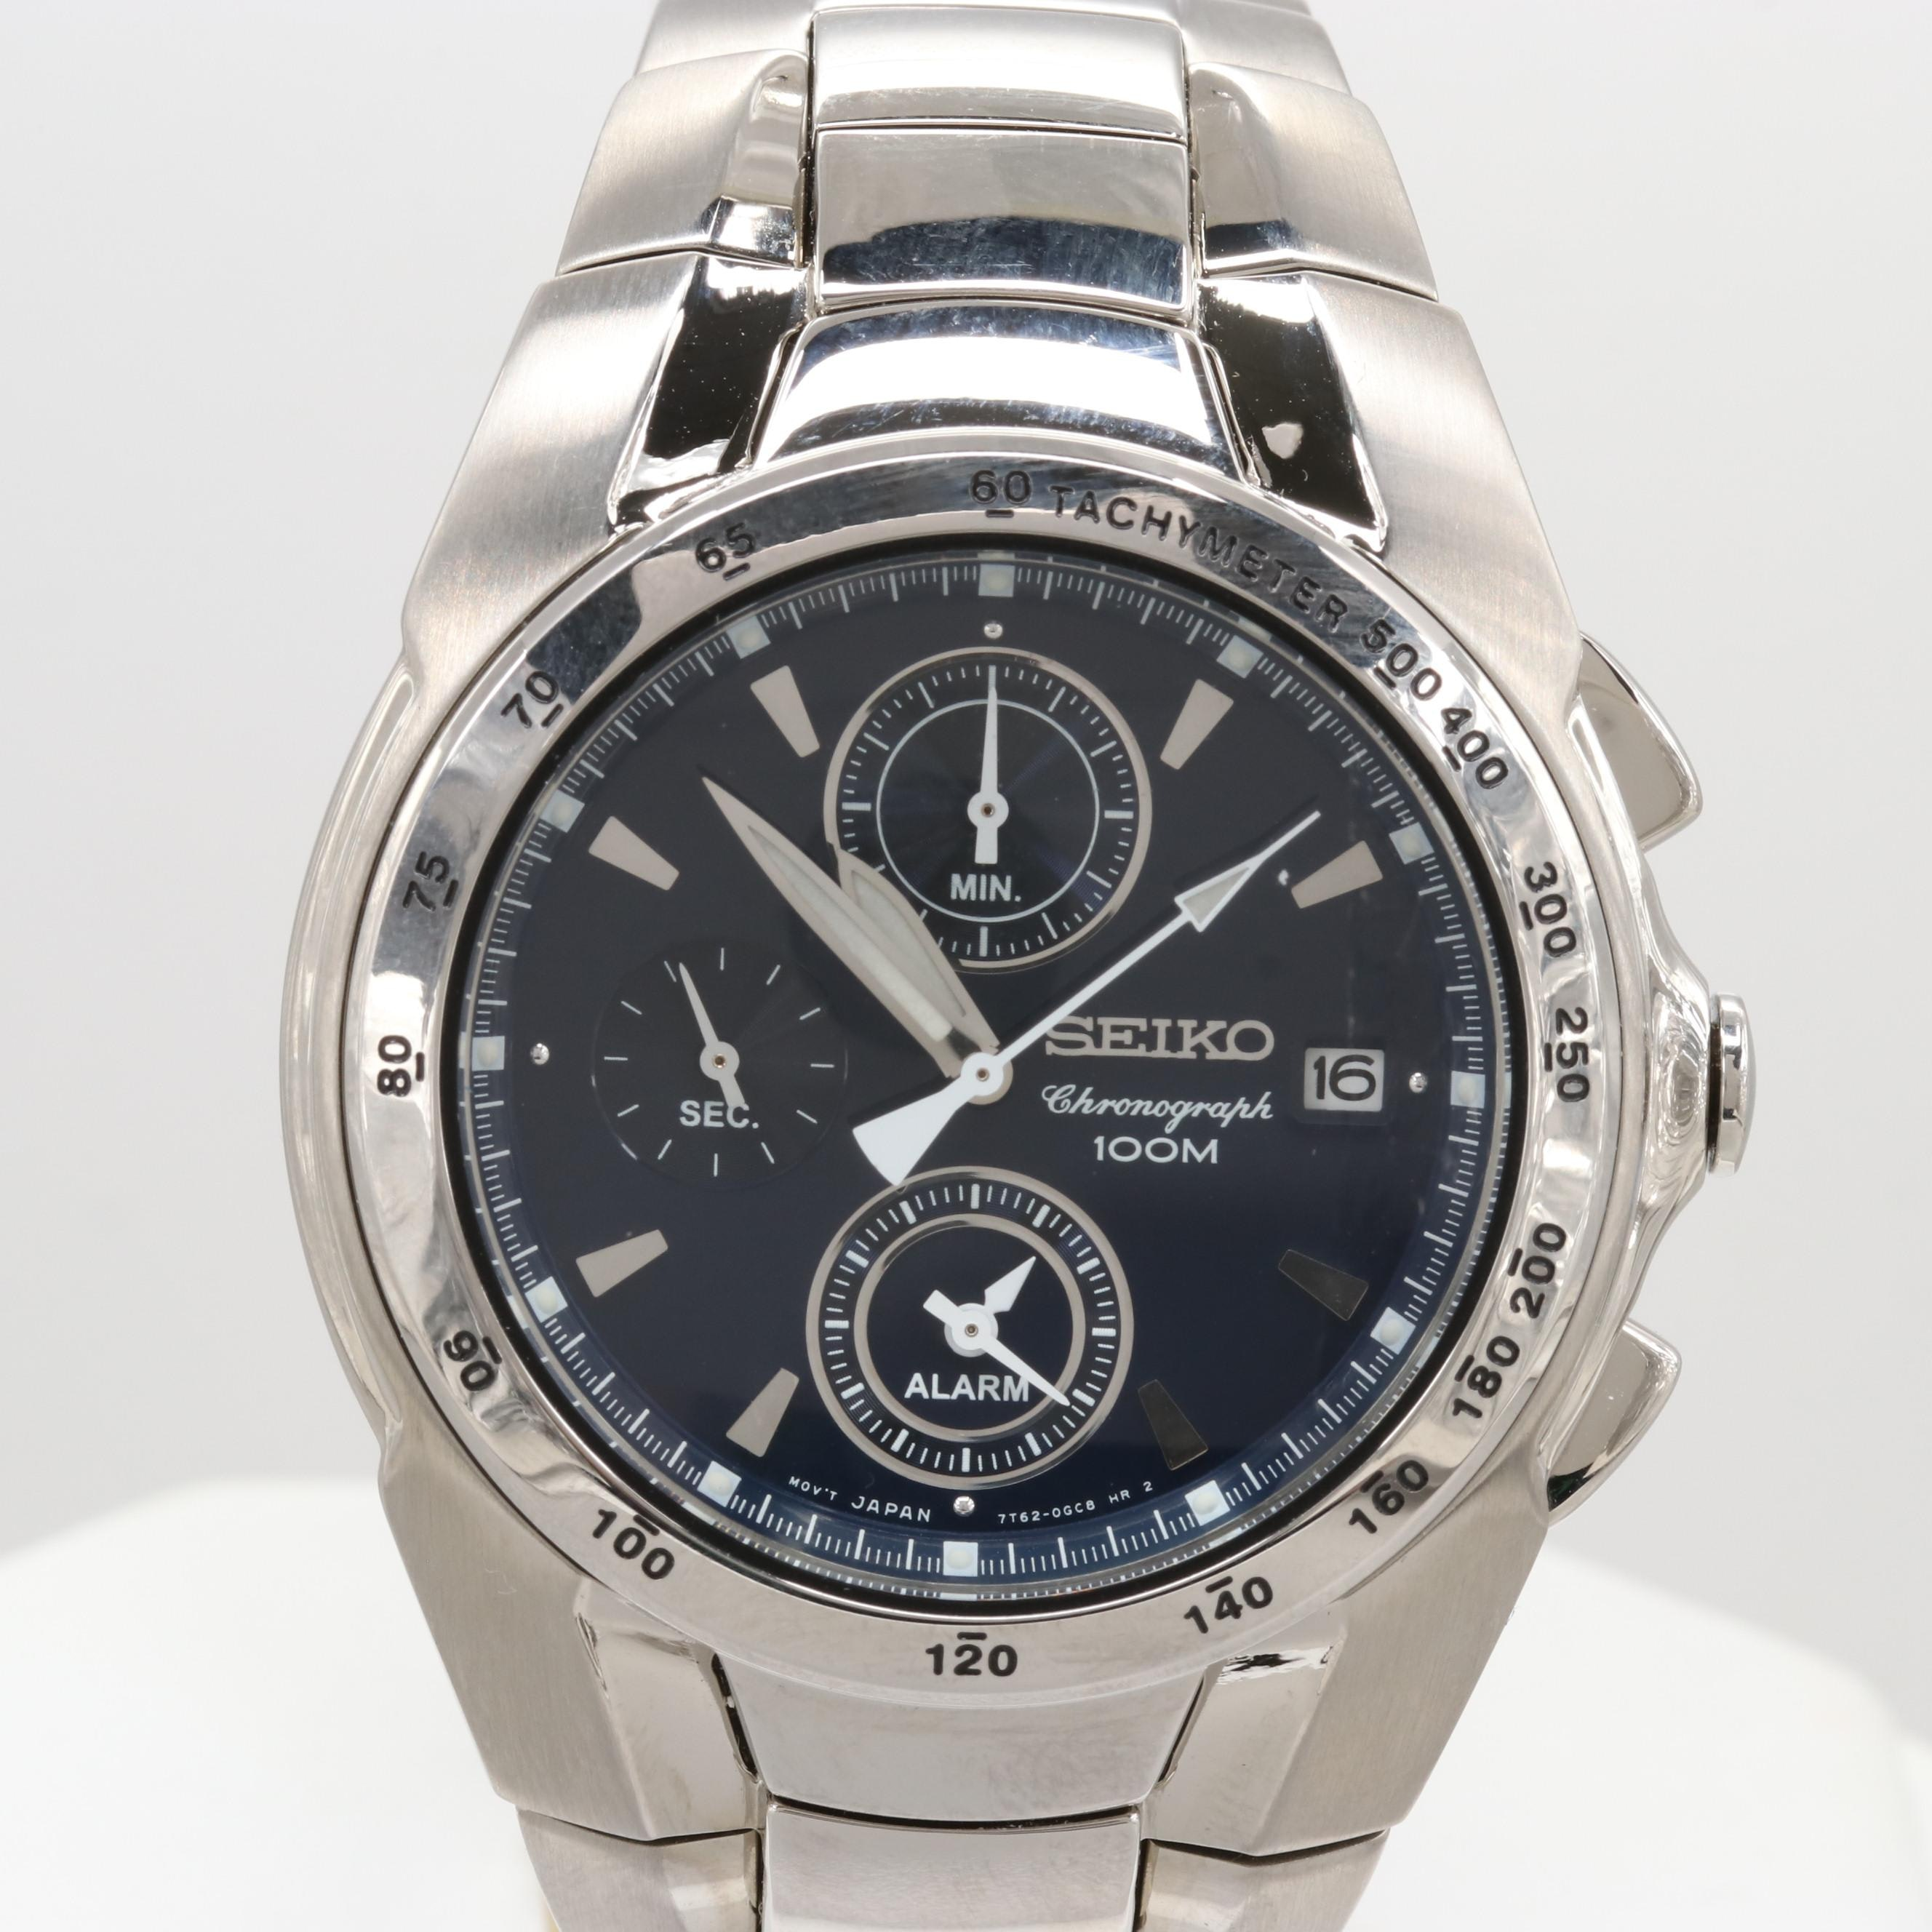 Seiko Stainless Steel Chronograph Wristwatch With Alarm and Date Window